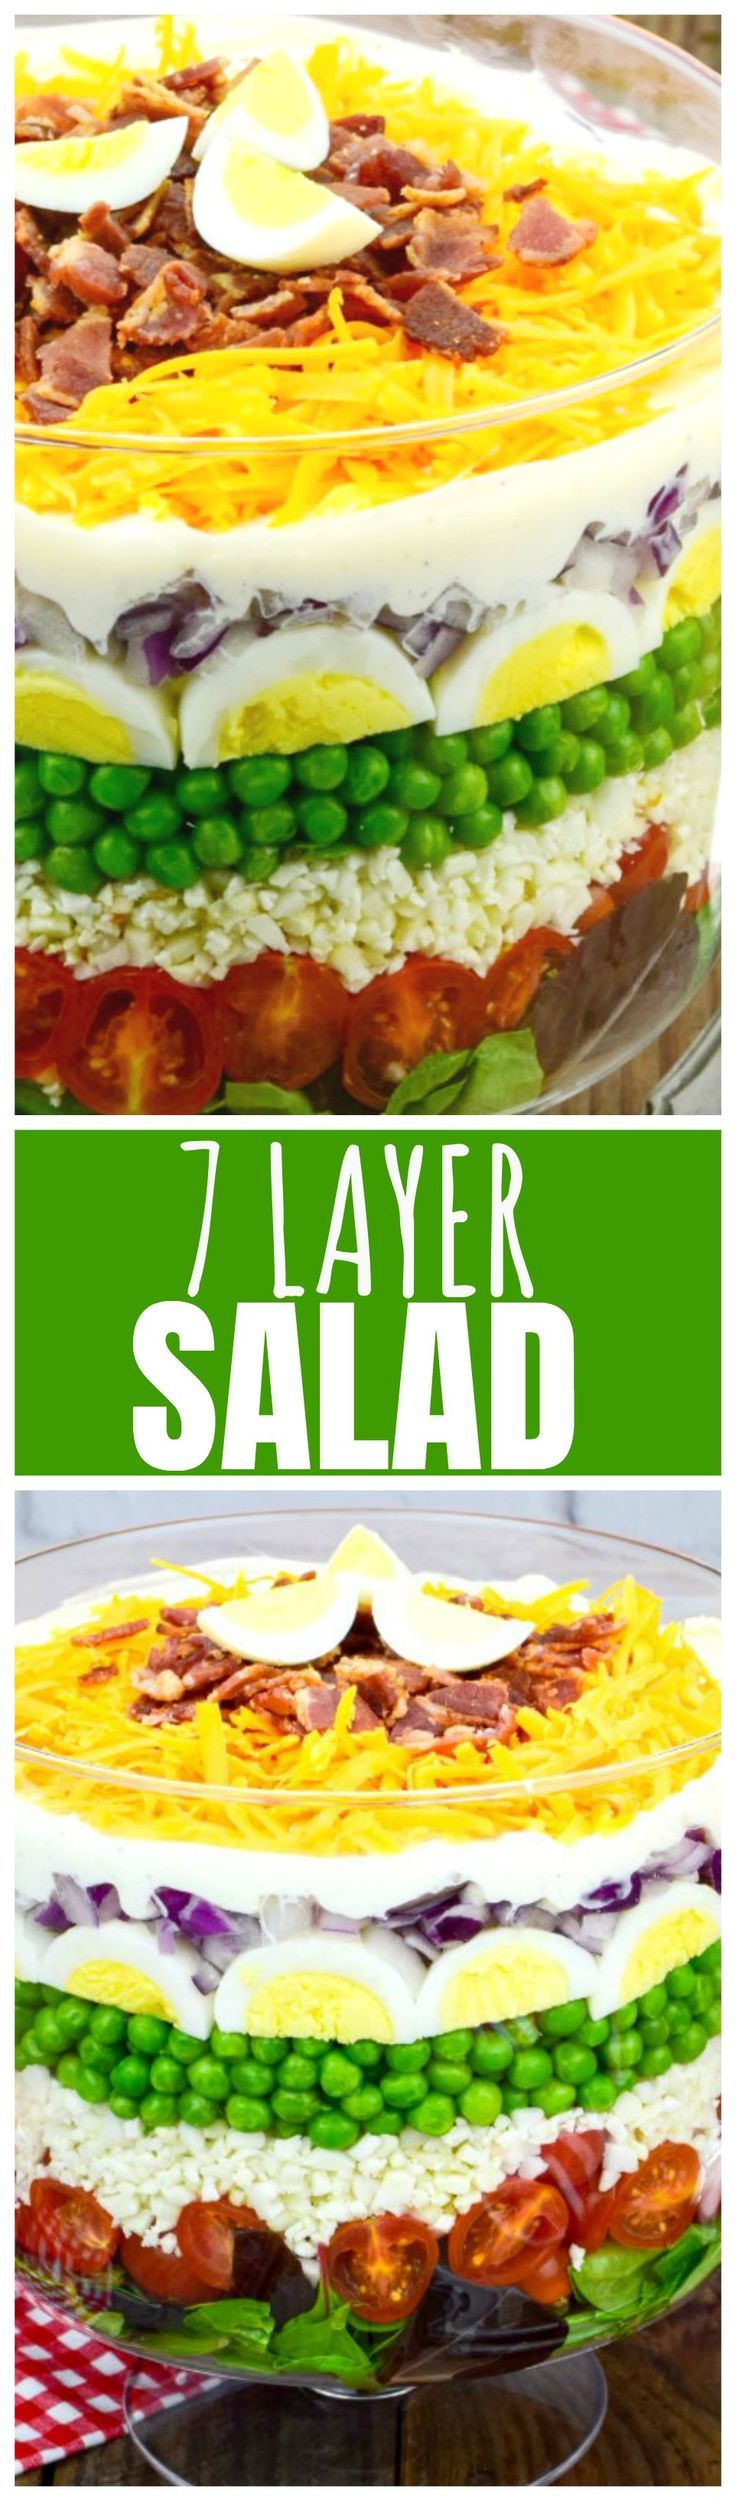 7 Layer Salad Recipe With Video Recipe Layered Salad Food Layered Salad Recipes